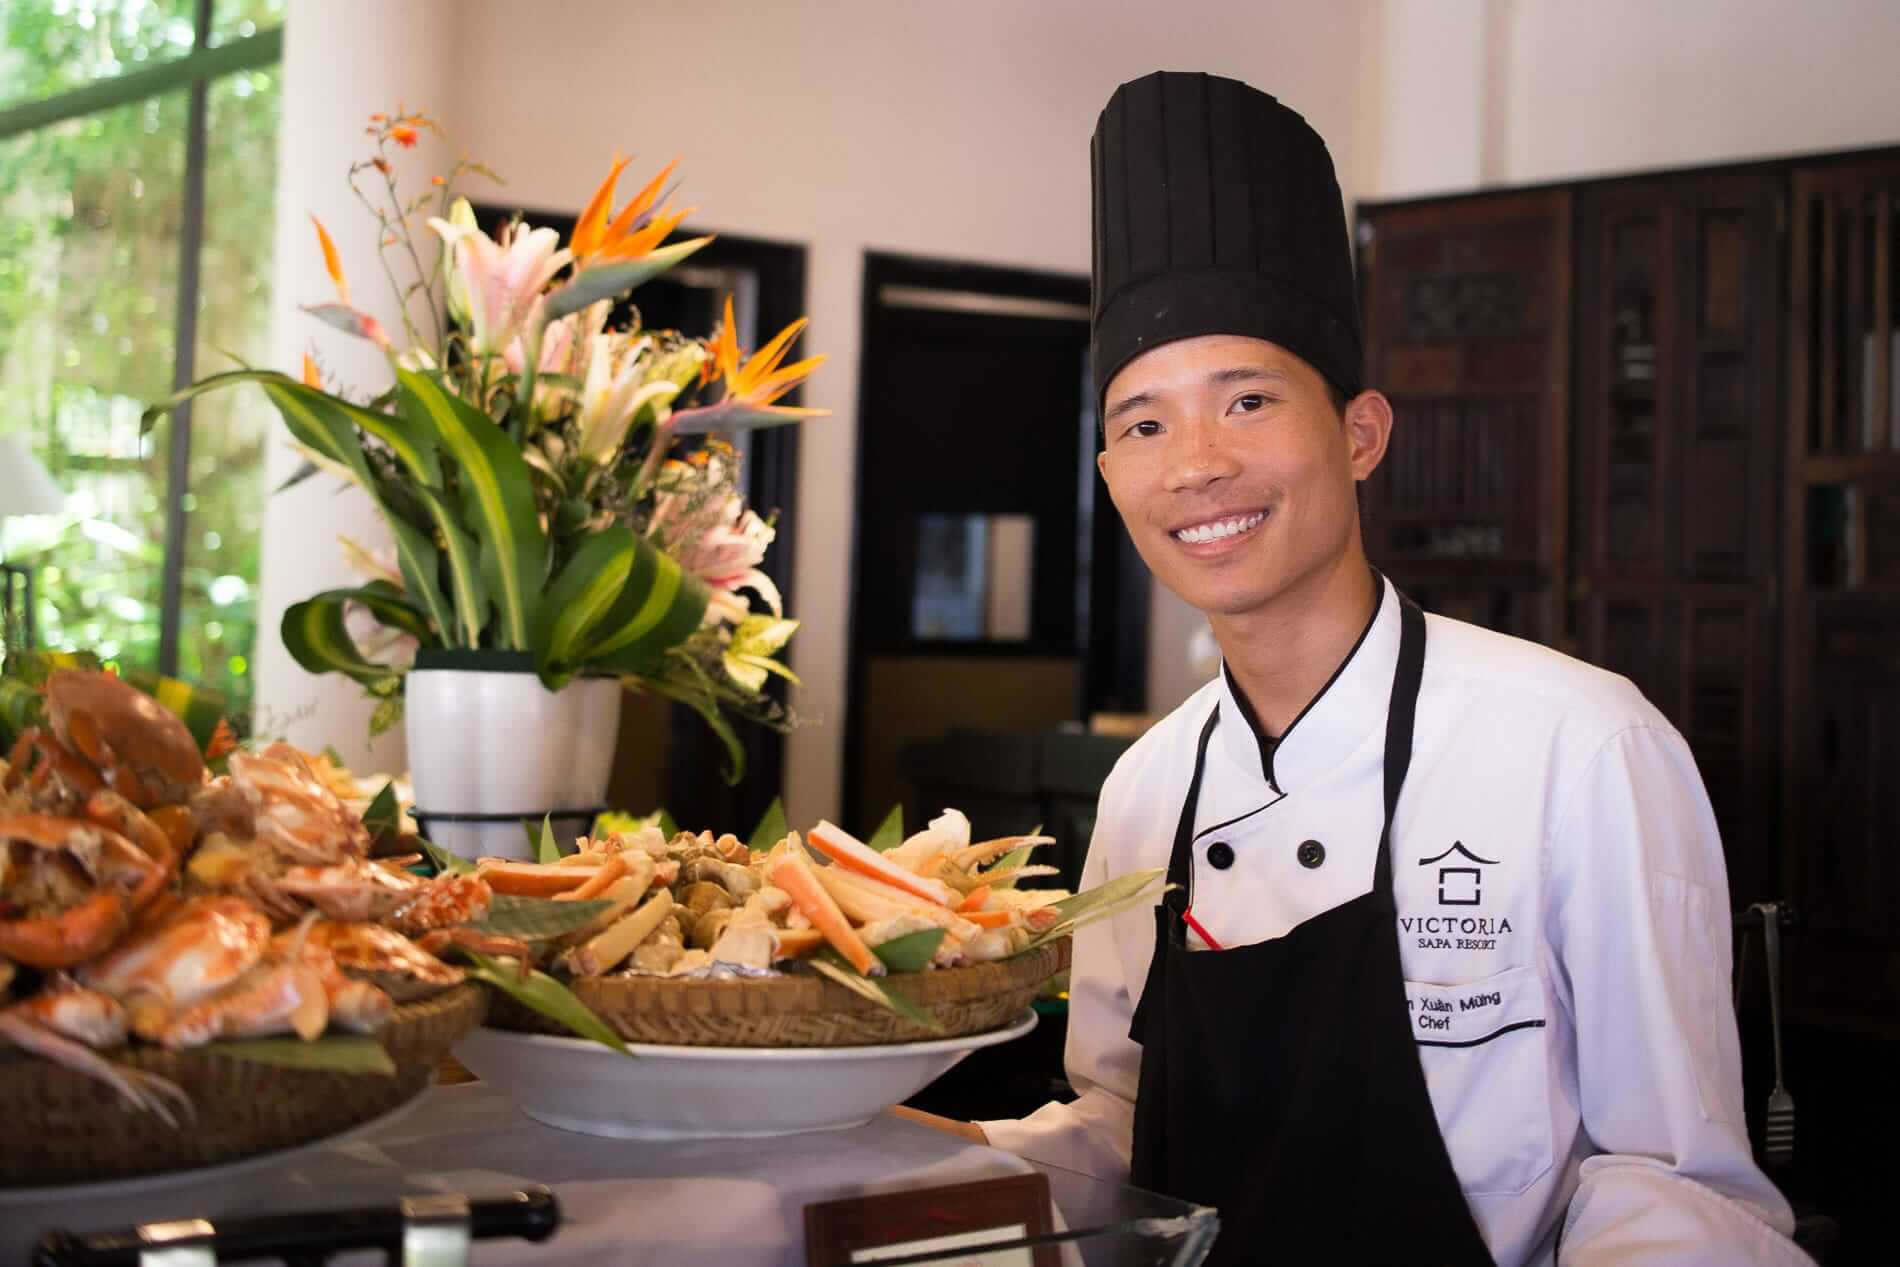 Chef at Victoria Hotel Buffet